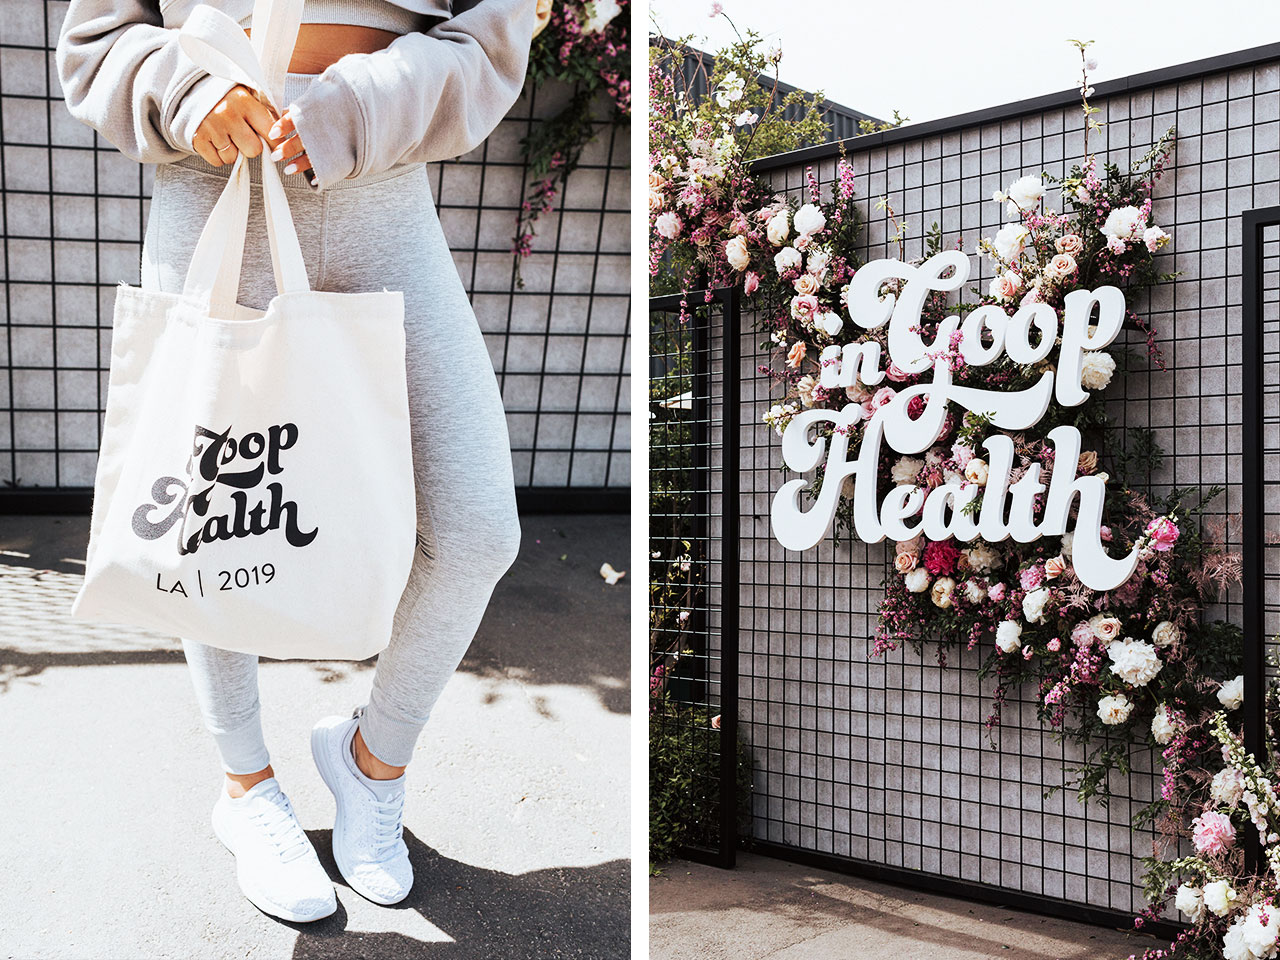 in goop health summit conference AgenC